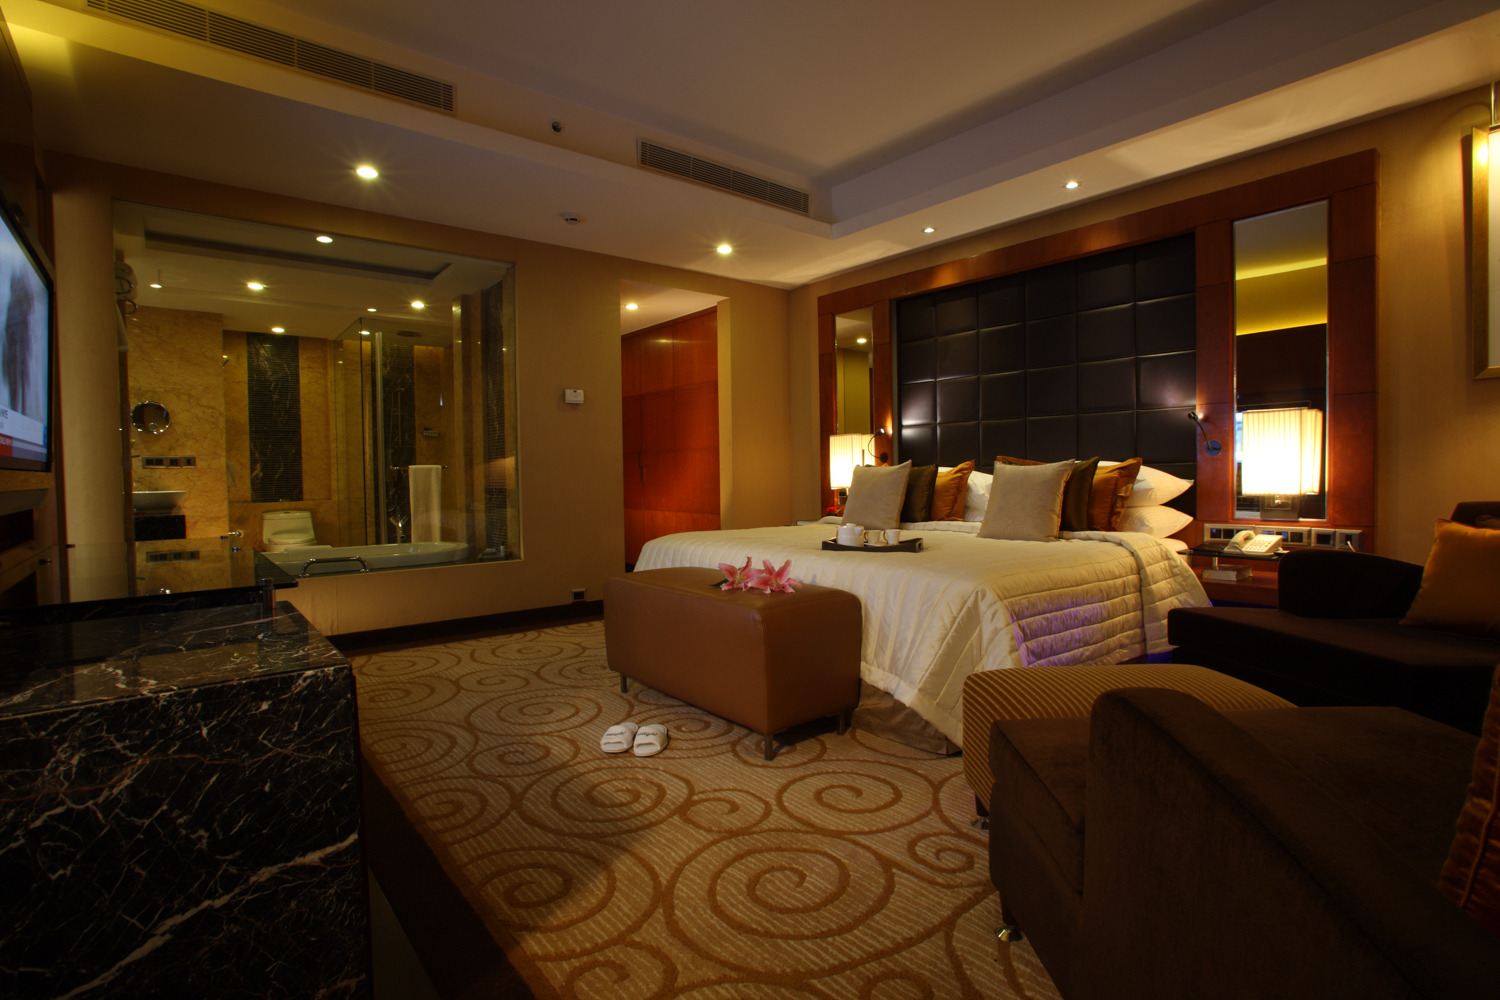 Deluxe Suite, Radisson Blu Plaza Delhi Airport Hotel. www.thingstodot.com.